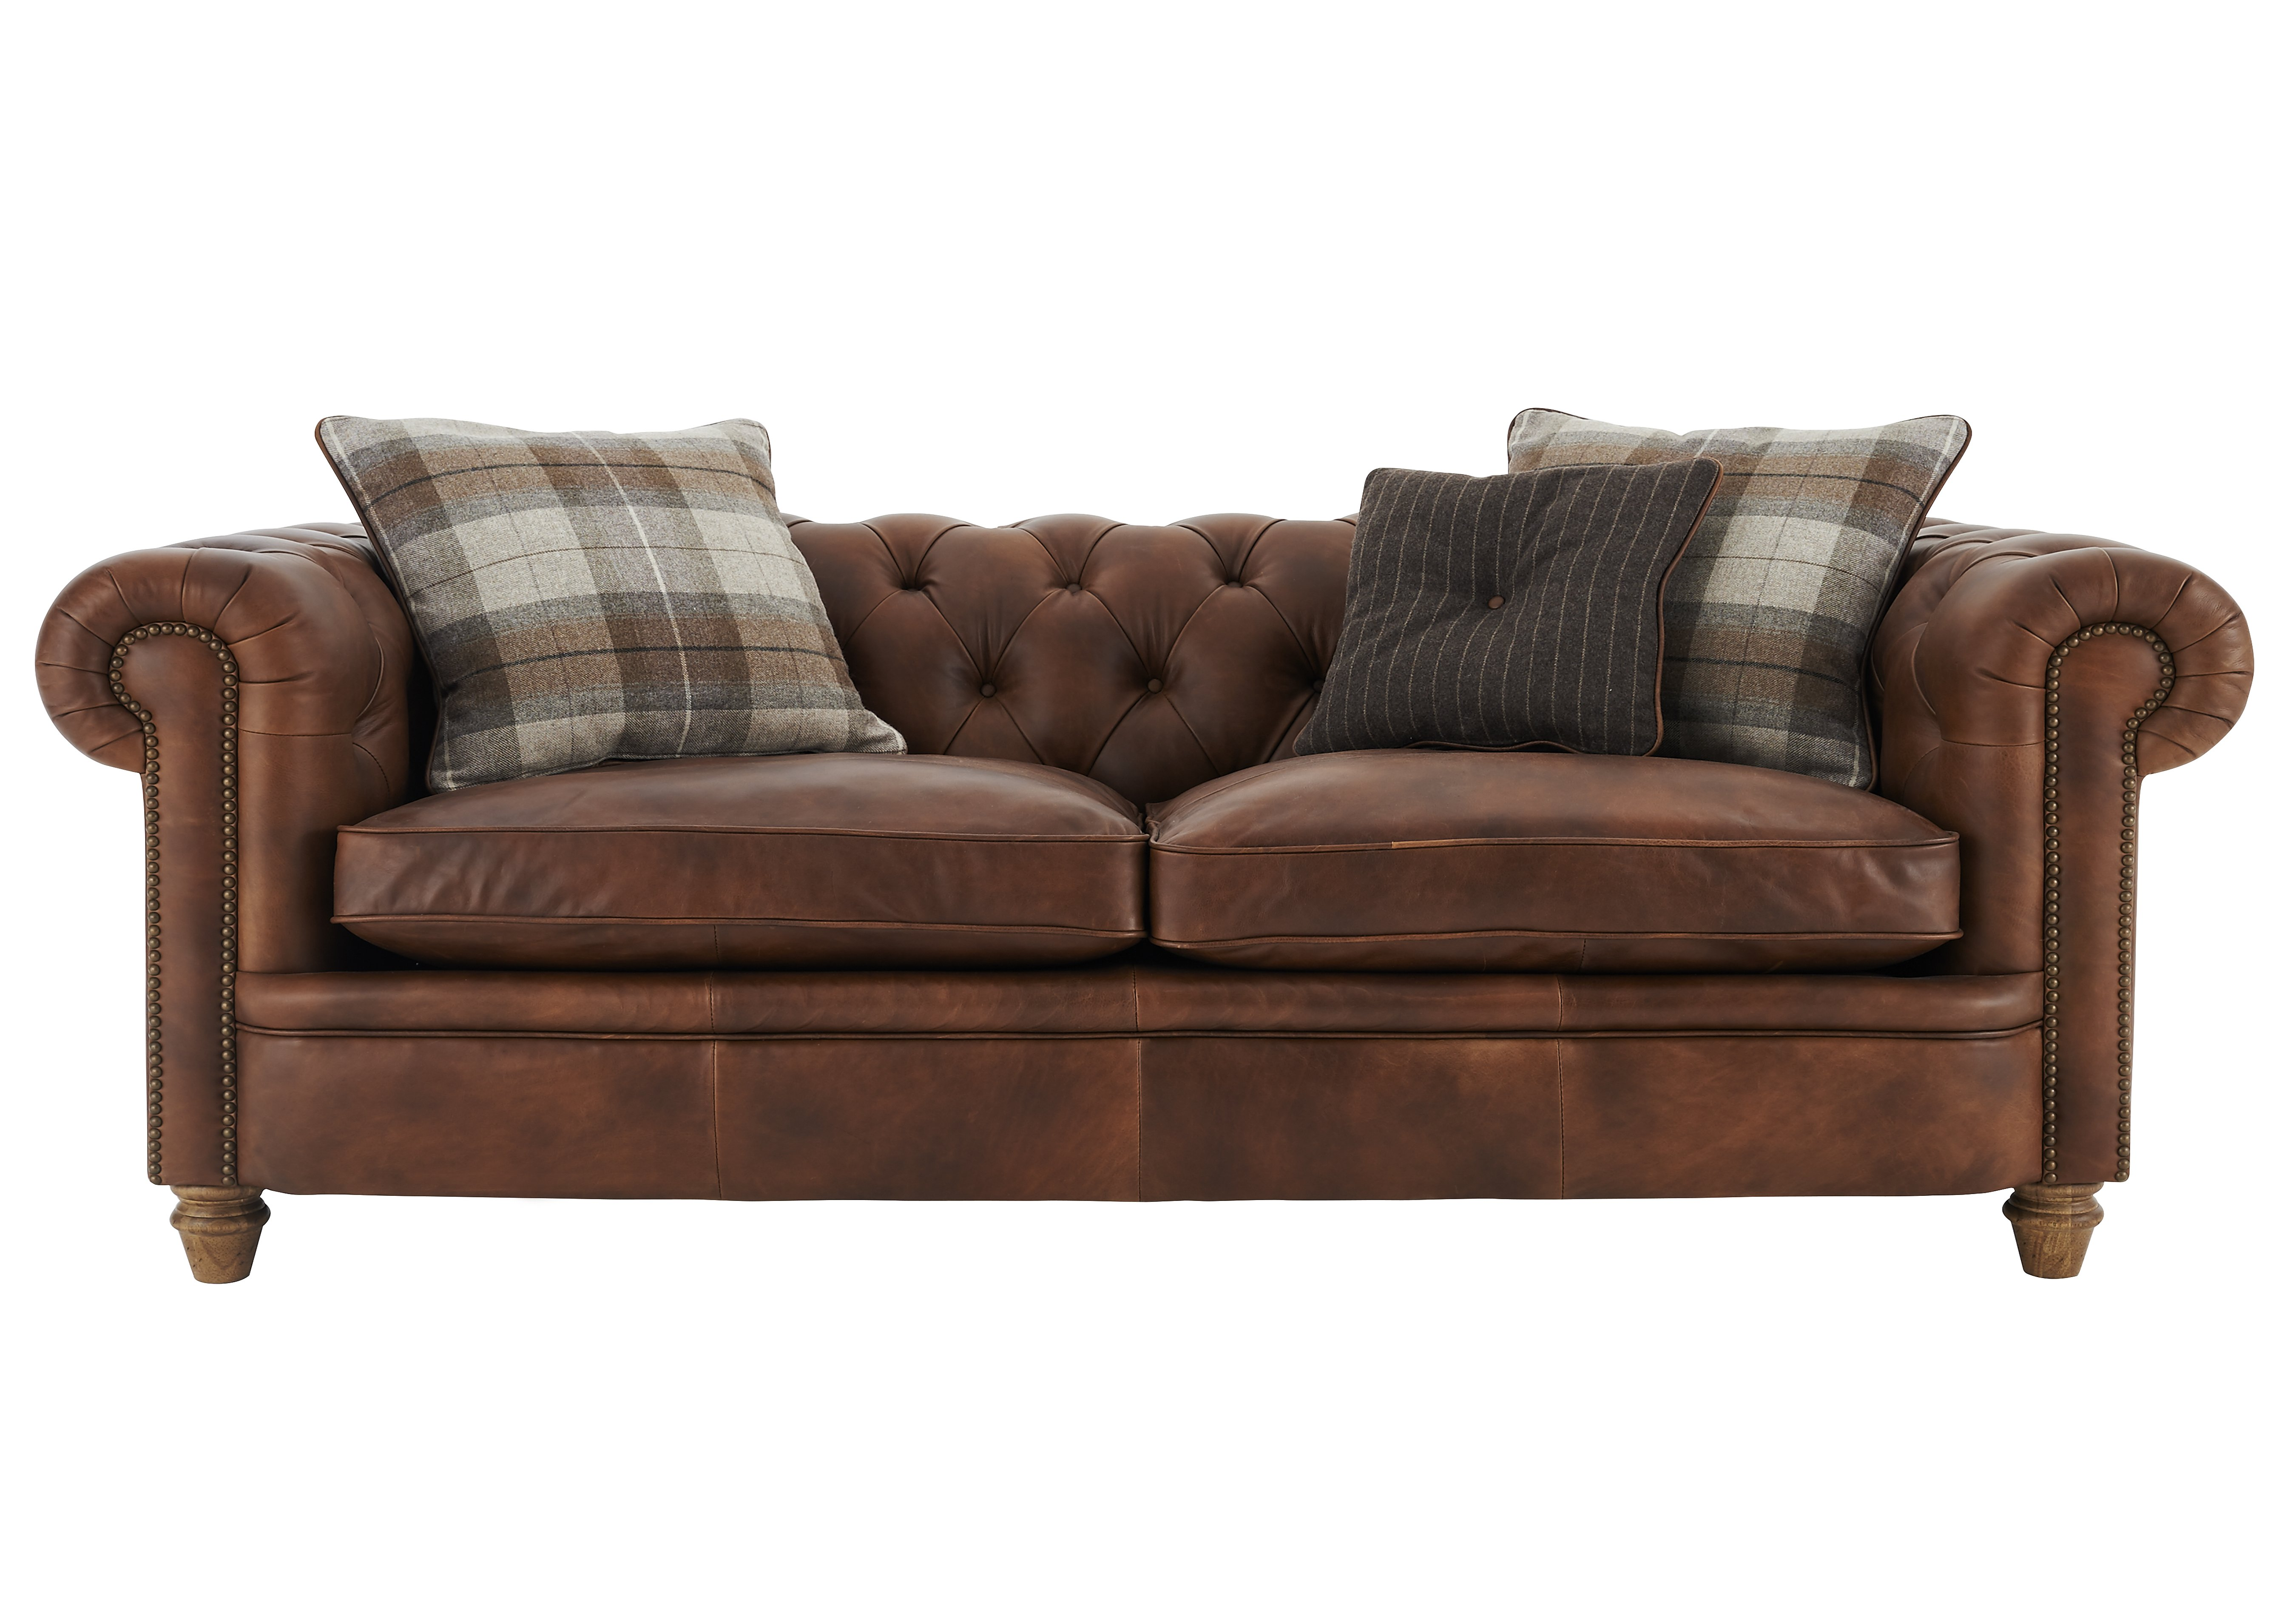 New England Newport 4 Seater Leather Sofa Alexander And James  ~ Brown Leather Sofa Chair